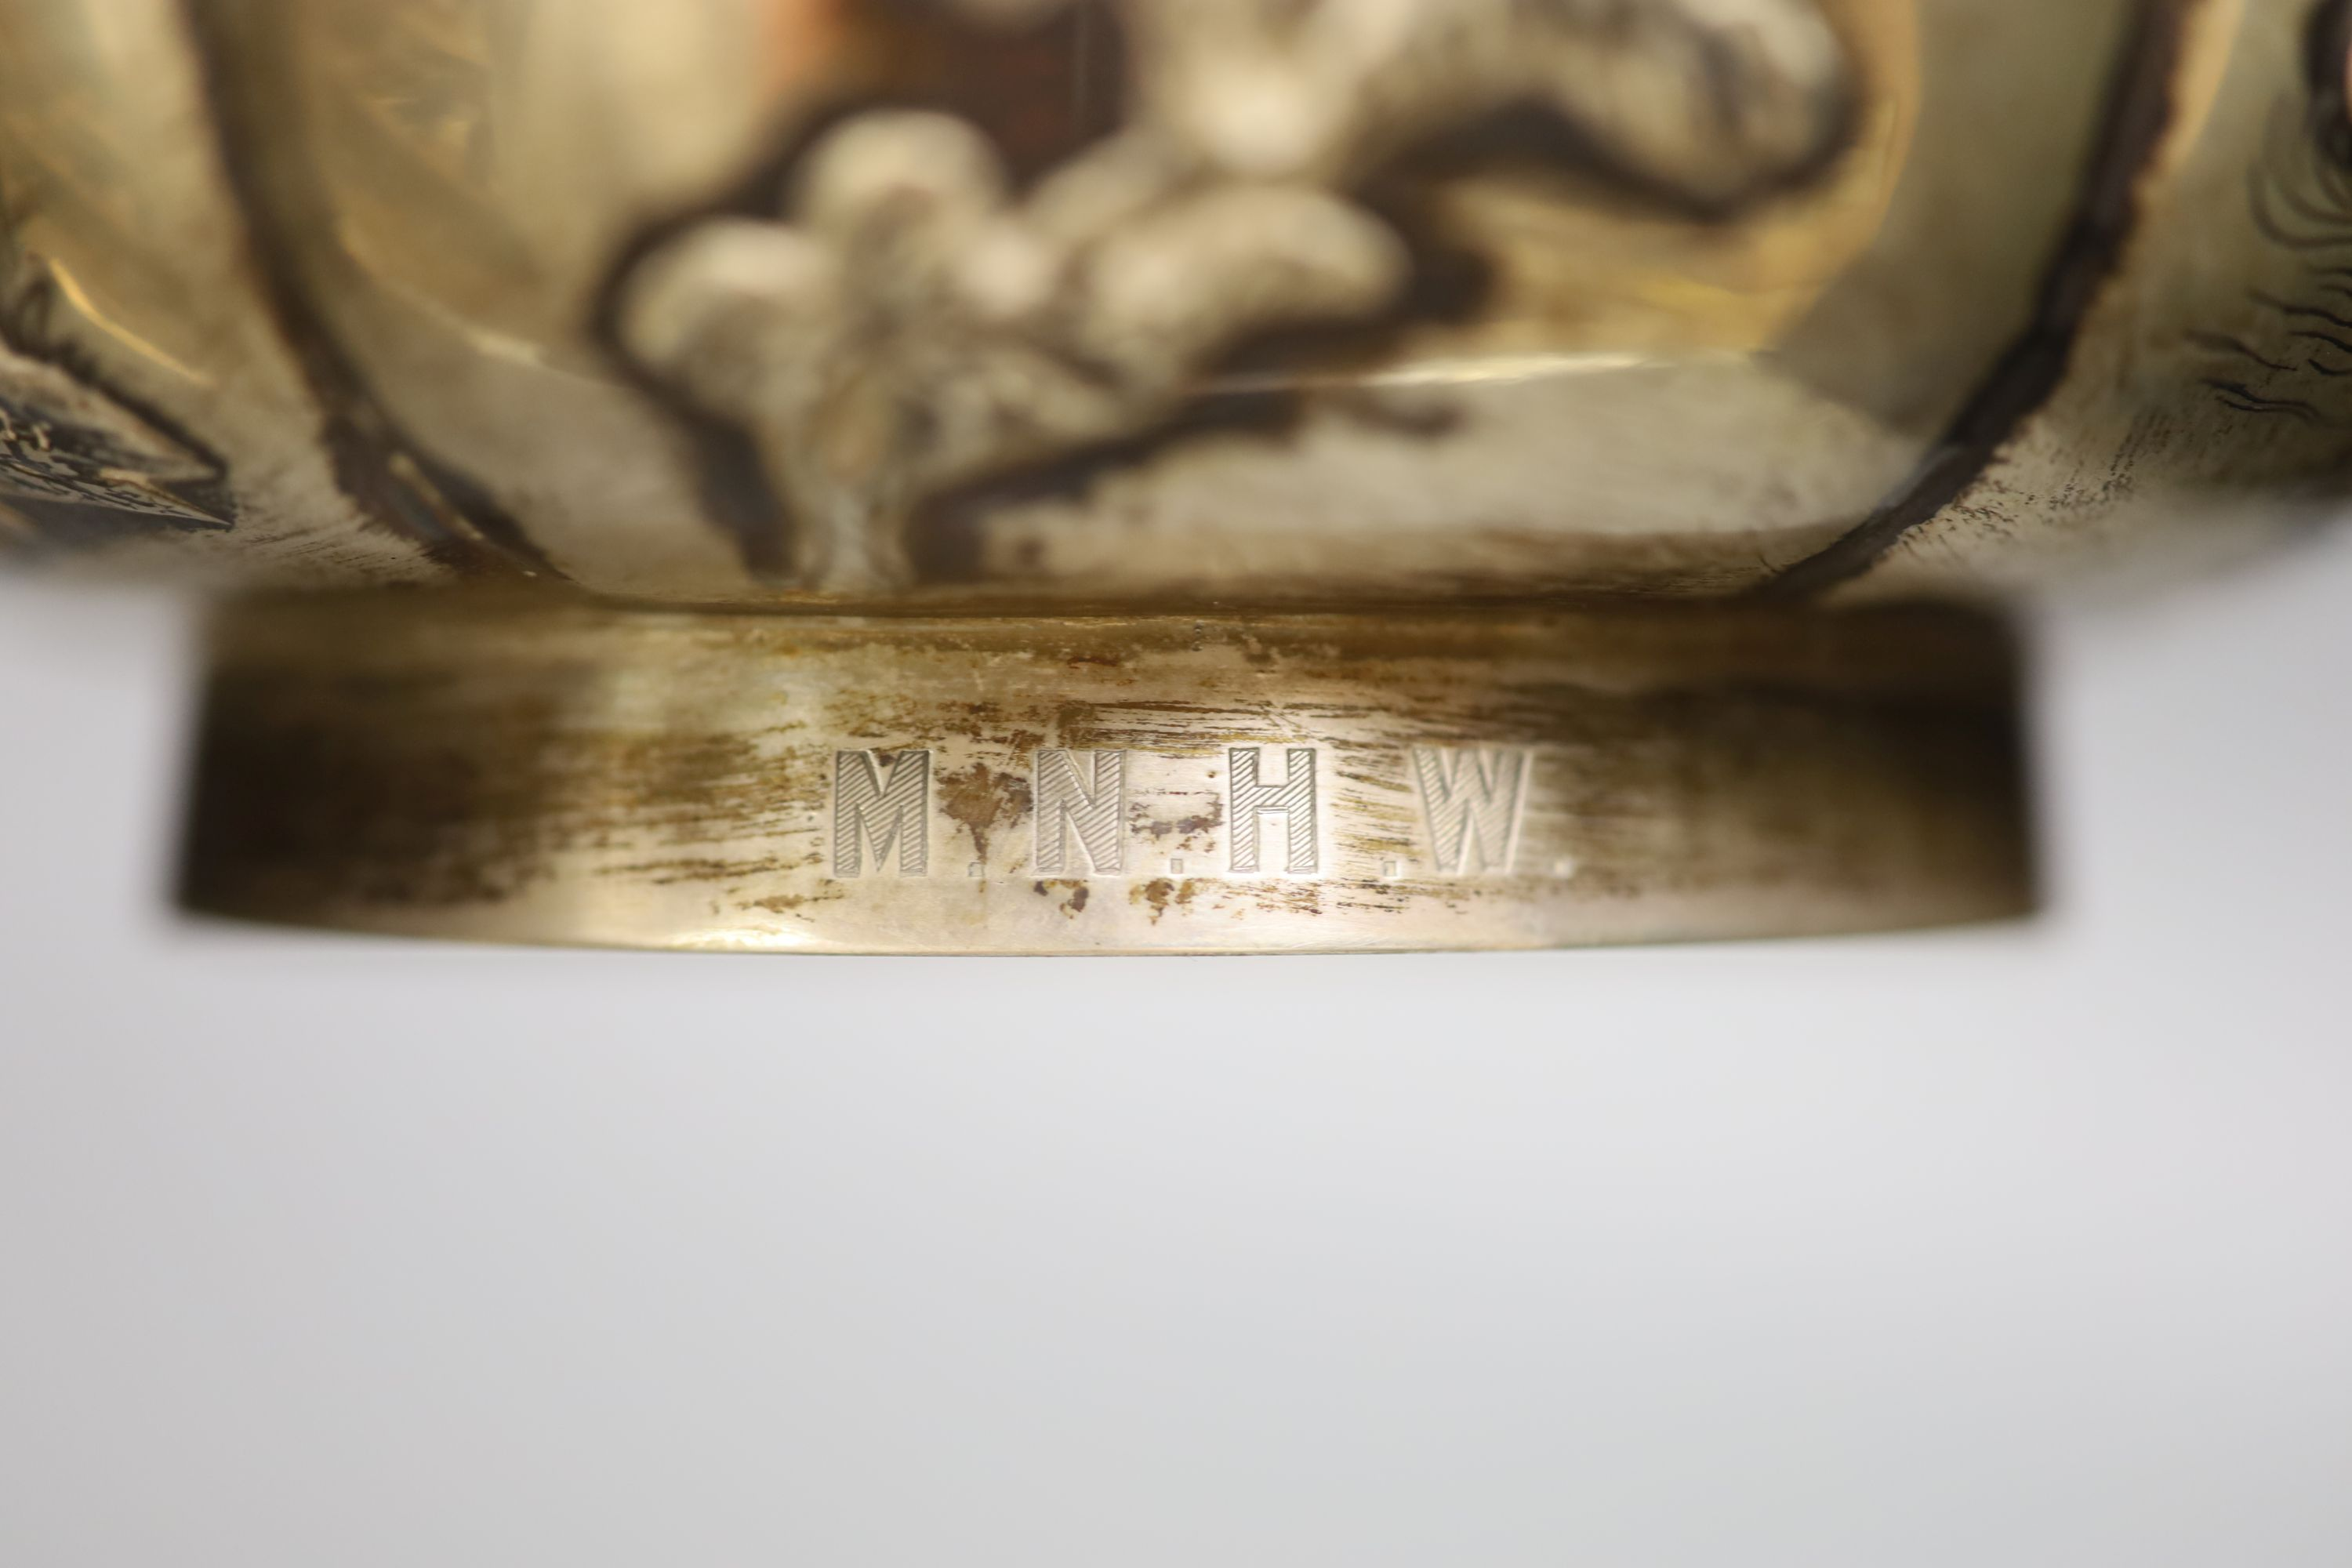 An early 20th century Chinese Export white metal bowl, by Wang Hing, Hong Kong, 13.5cm, 6oz. - Image 4 of 4